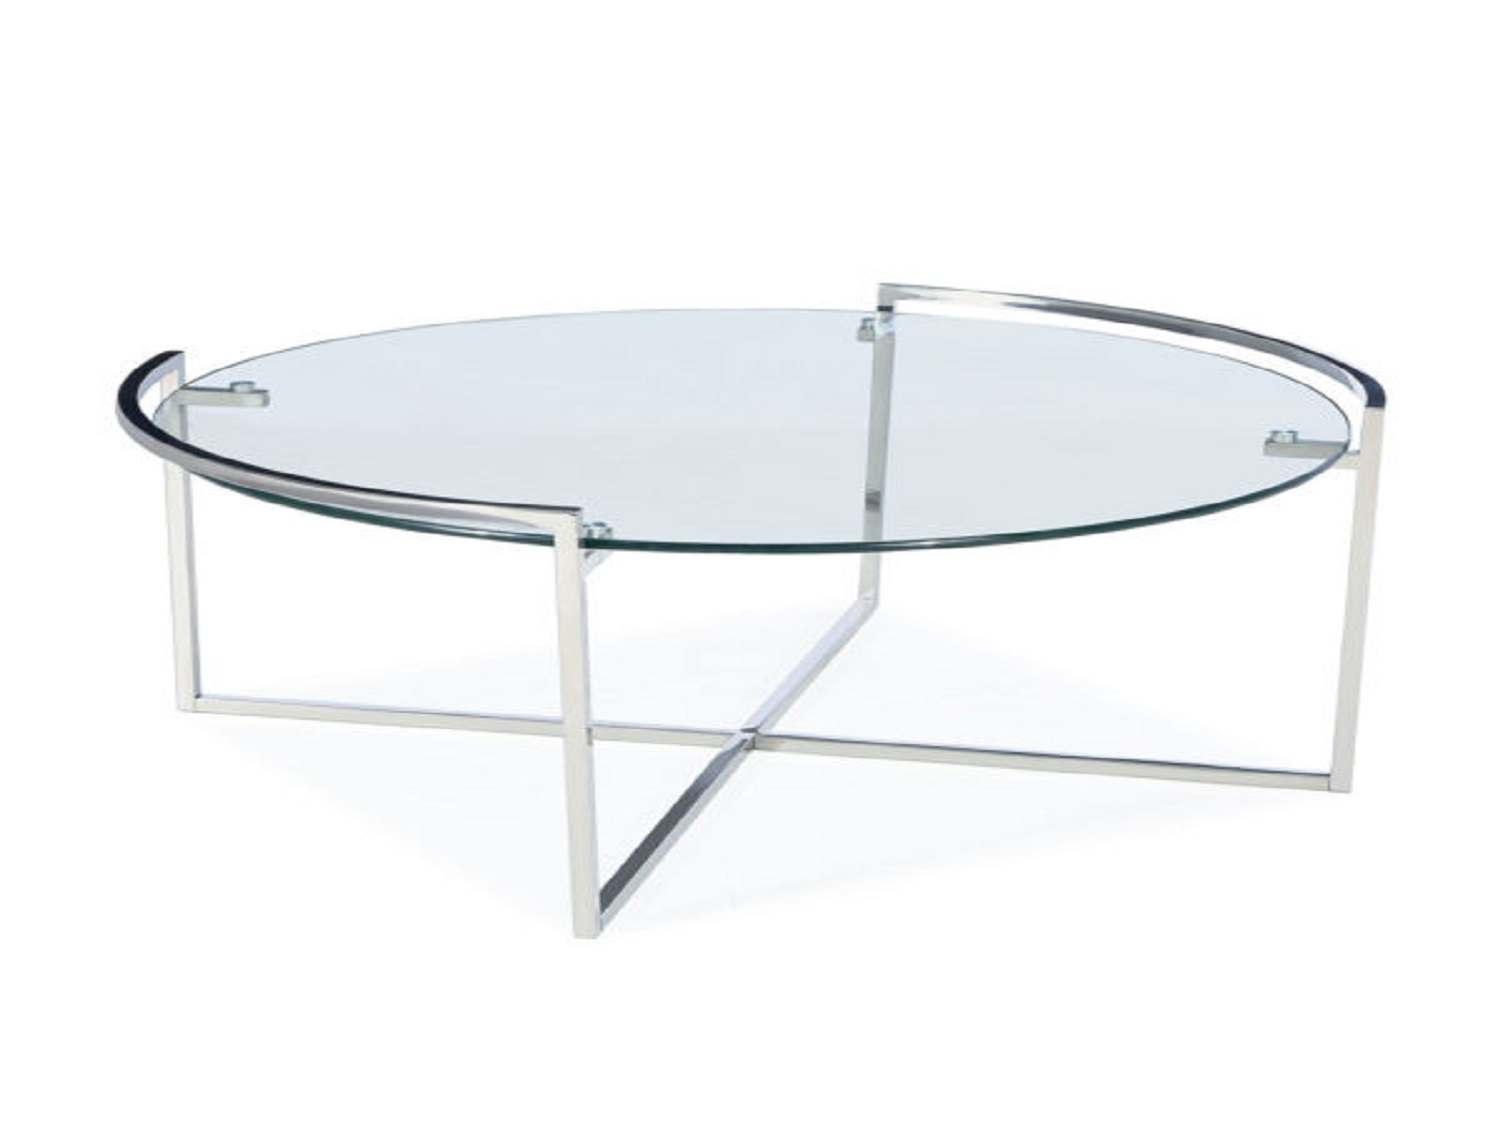 Porto Round Coffee Table, GY-CT-8029RD, Cofee Table by Midha Furniture to Brampton, Mississauga, Etobicoke, Toronto, Scraborough, Caledon, Oakville, Markham, Ajax, Pickering, Oshawa, Richmondhill, Kitchener, Hamilton and GTA area